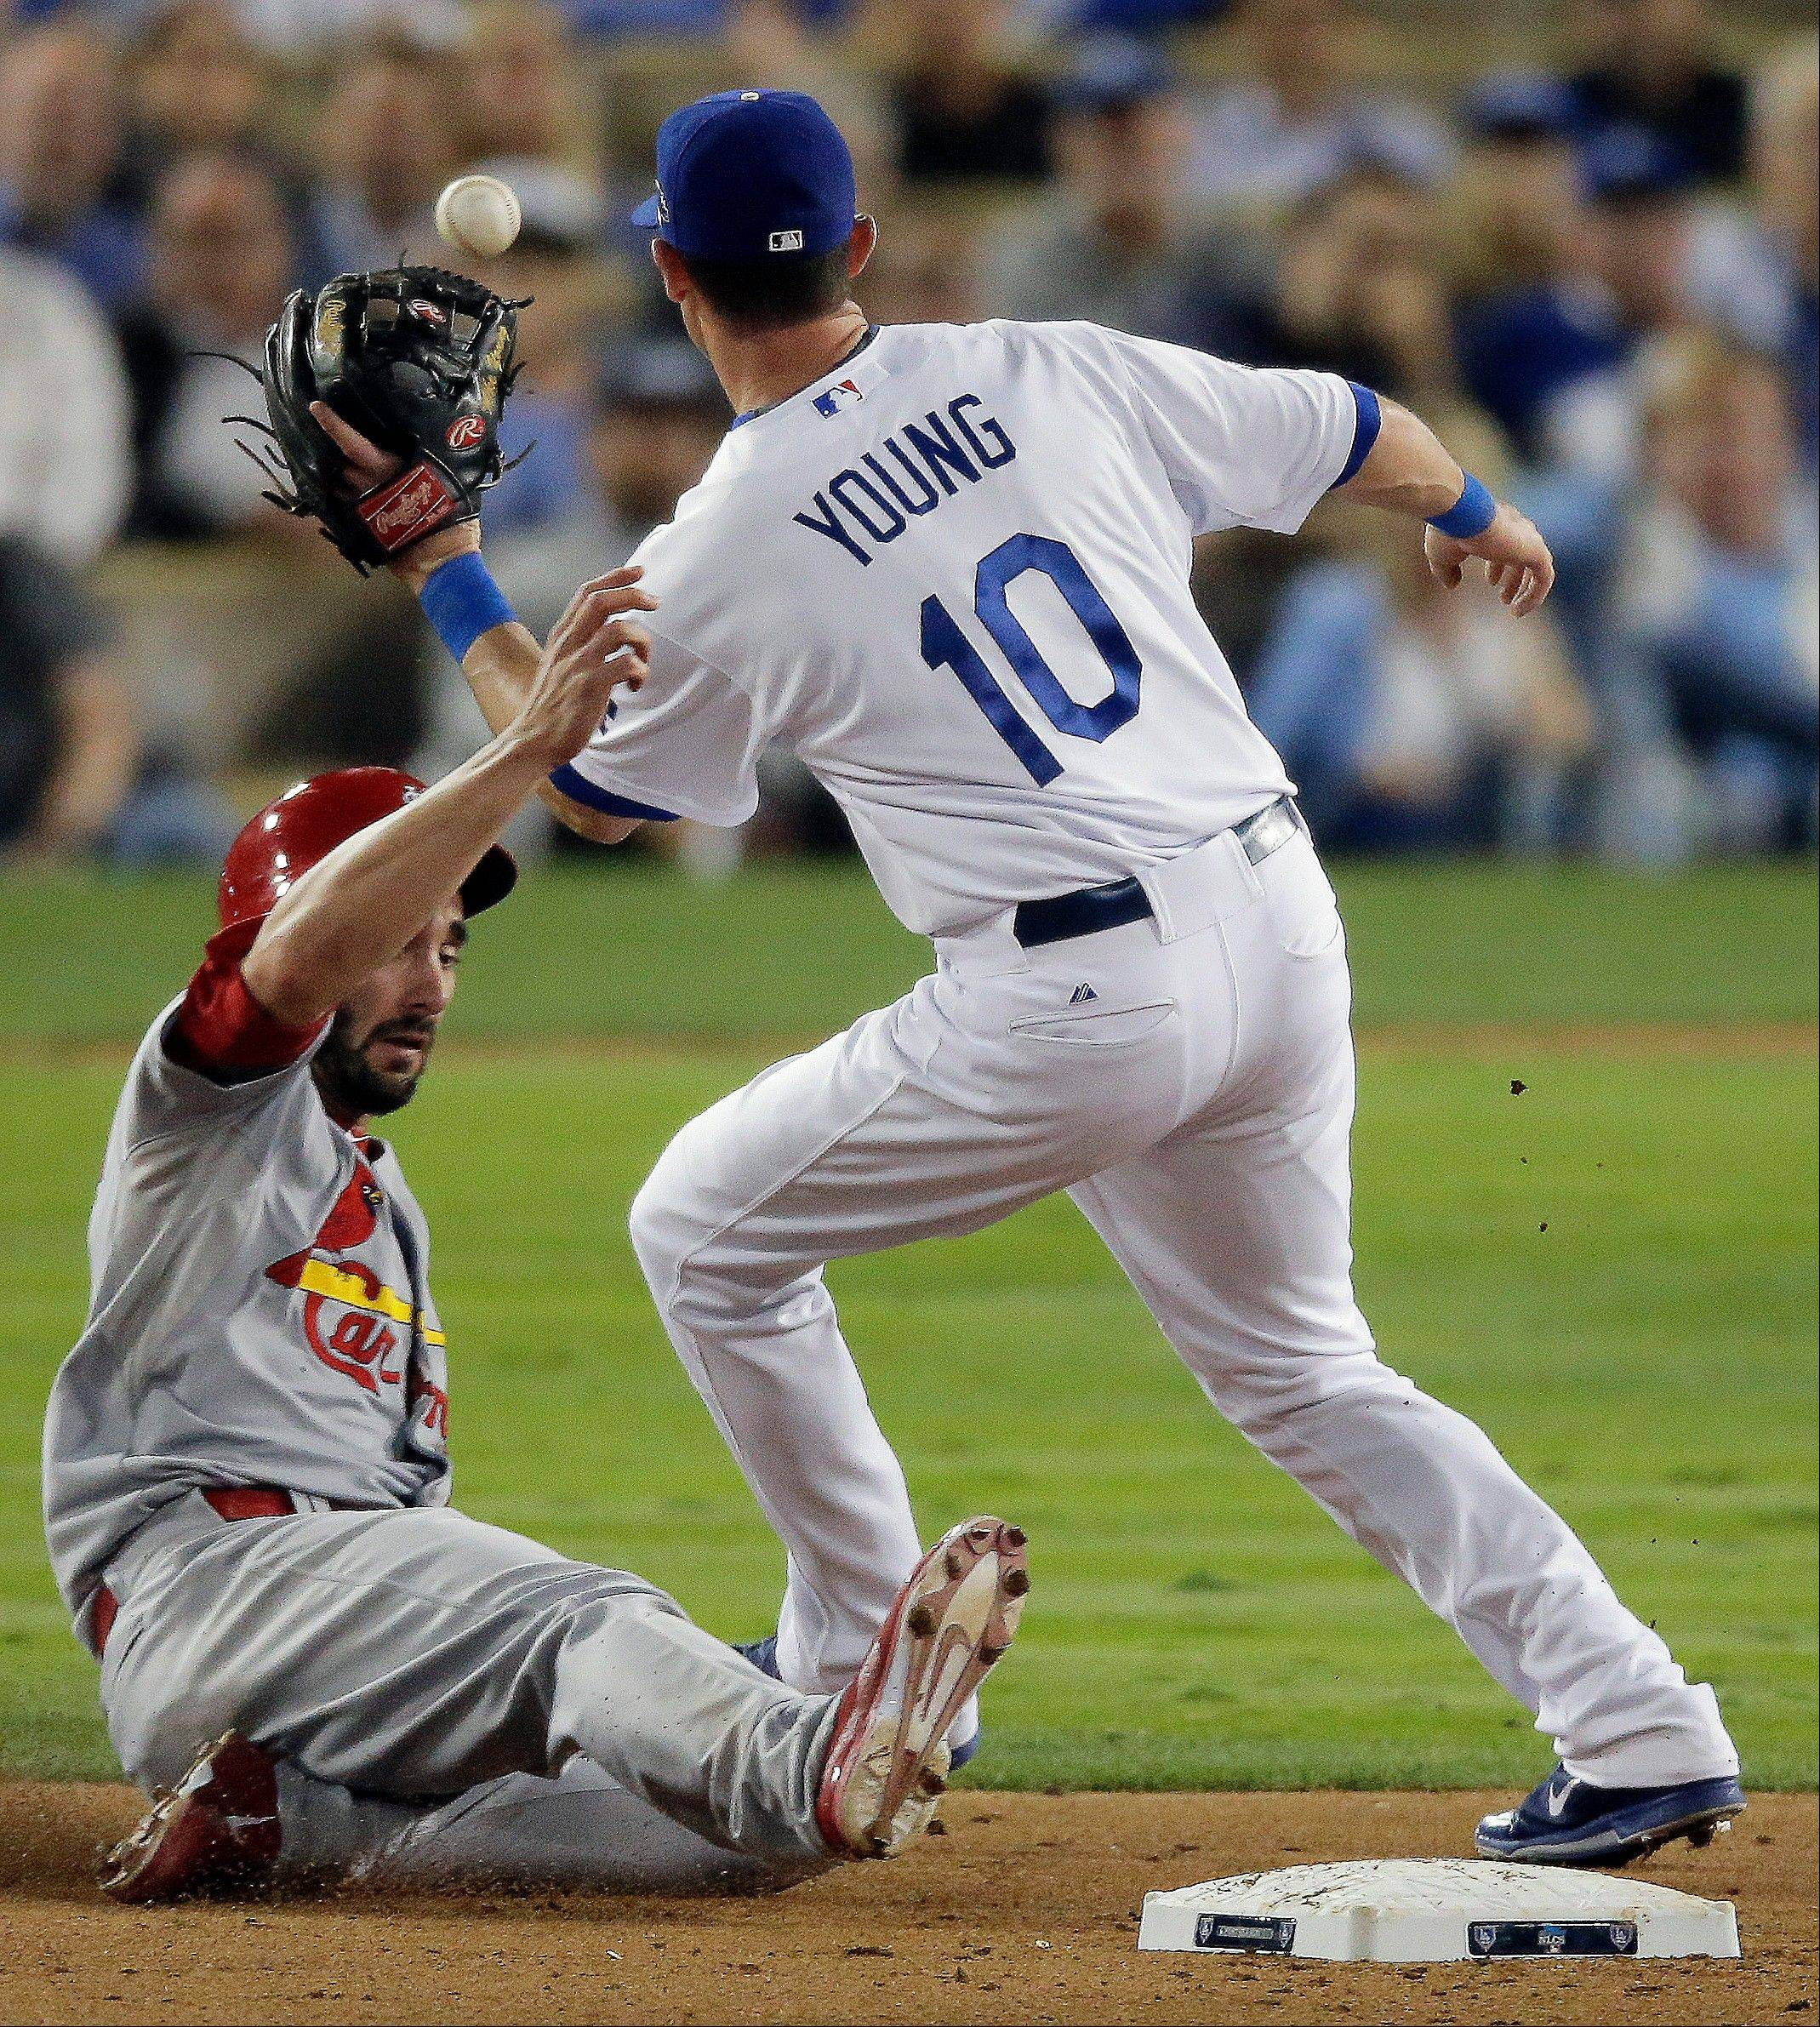 The Cardinals' Matt Carpenter steals second with the Dodgers' Michael Young covering during the ninth inning of Game 4.